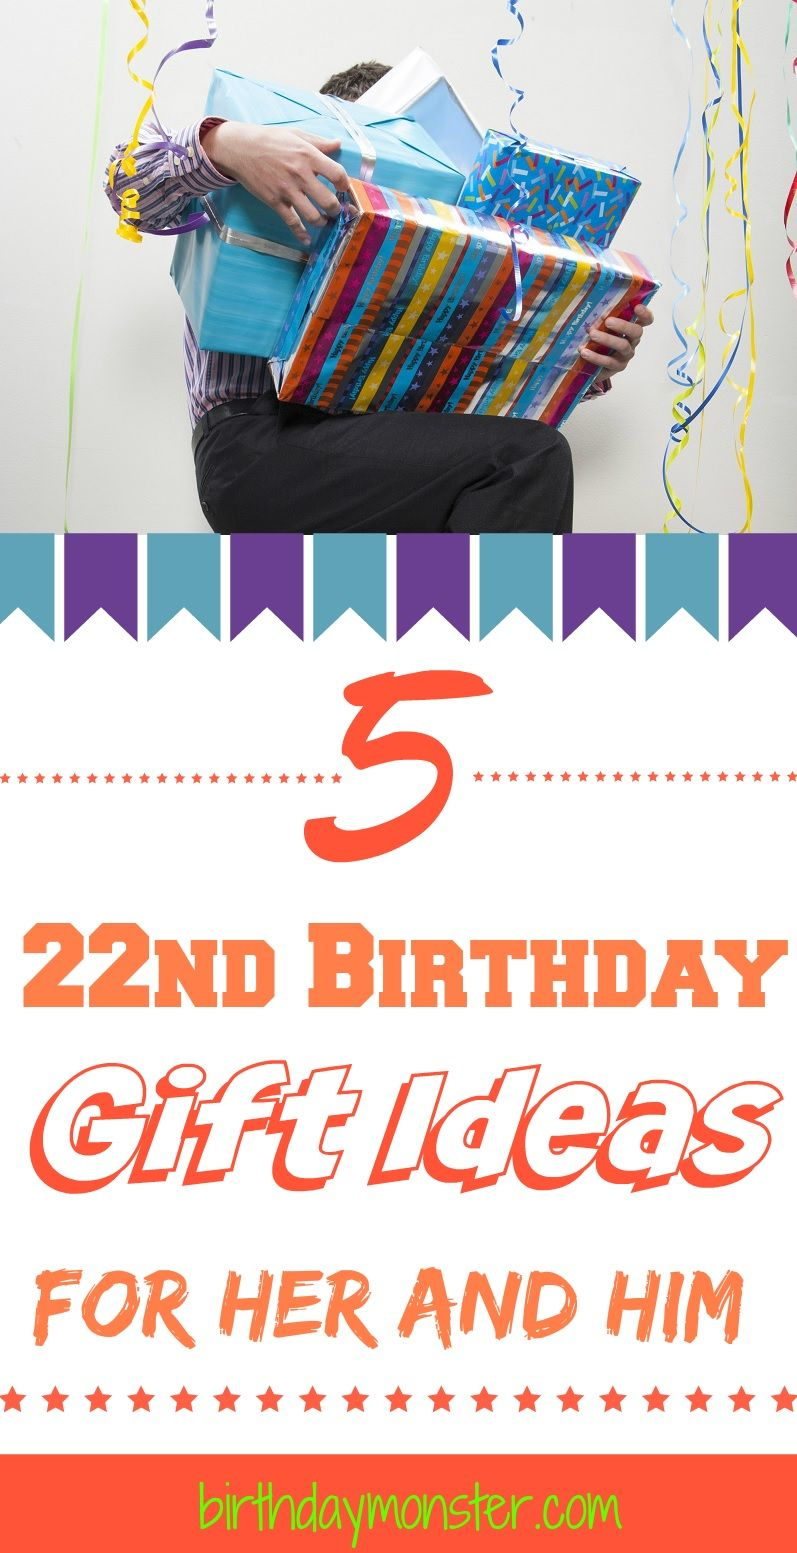 22nd Birthday Gift Ideas For Her And Him What Makes A Good